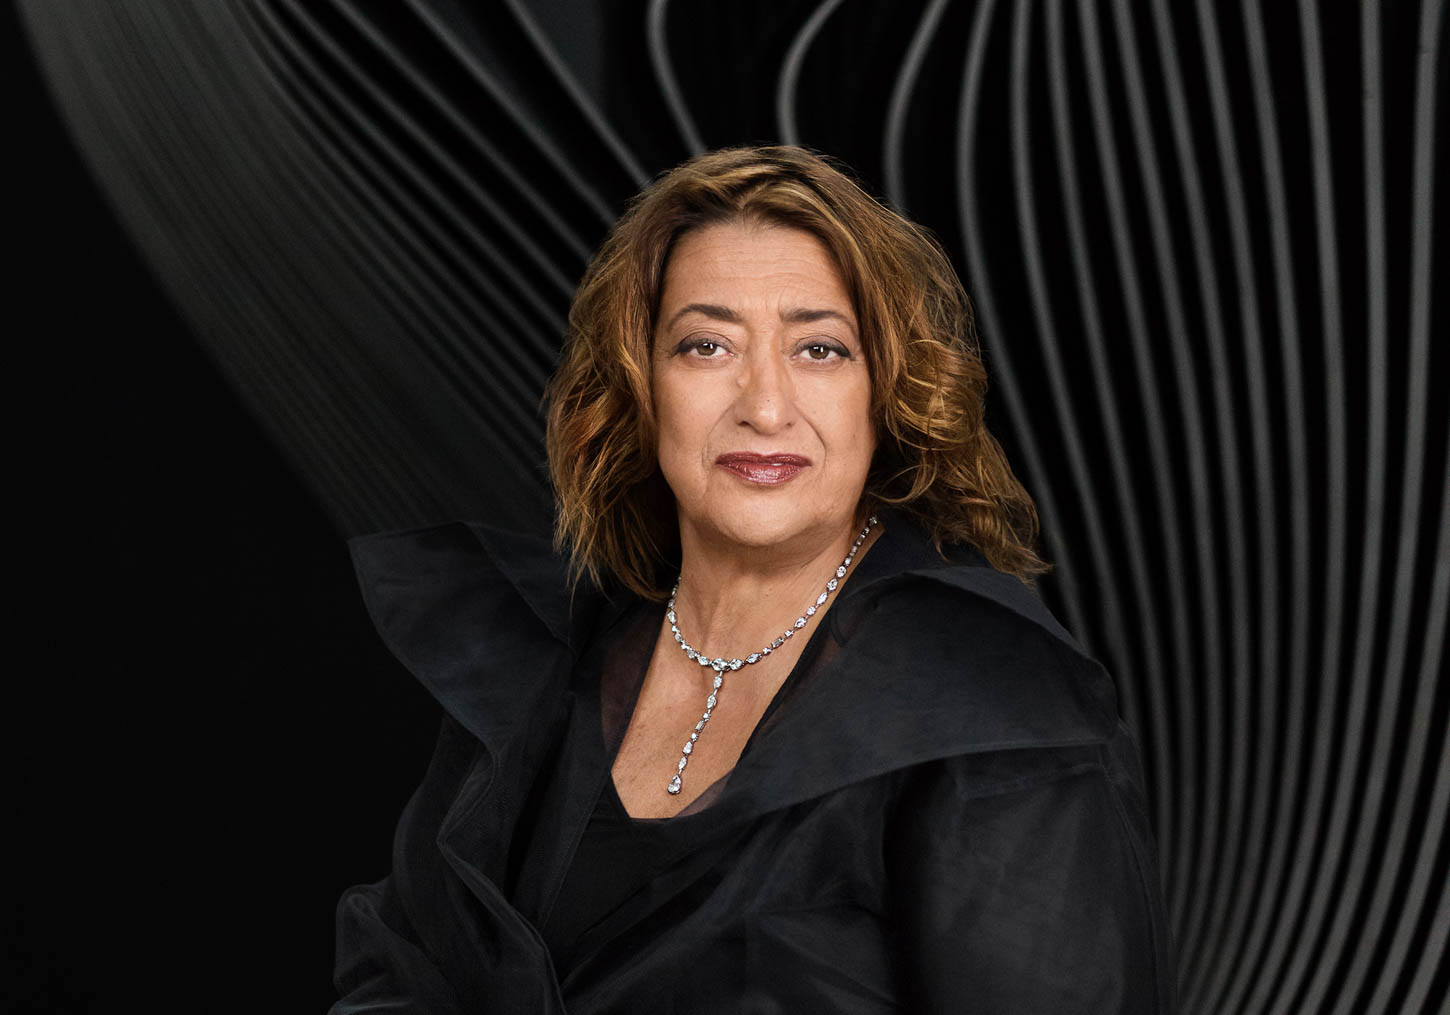 http://content.related.com/Zaha Hadid